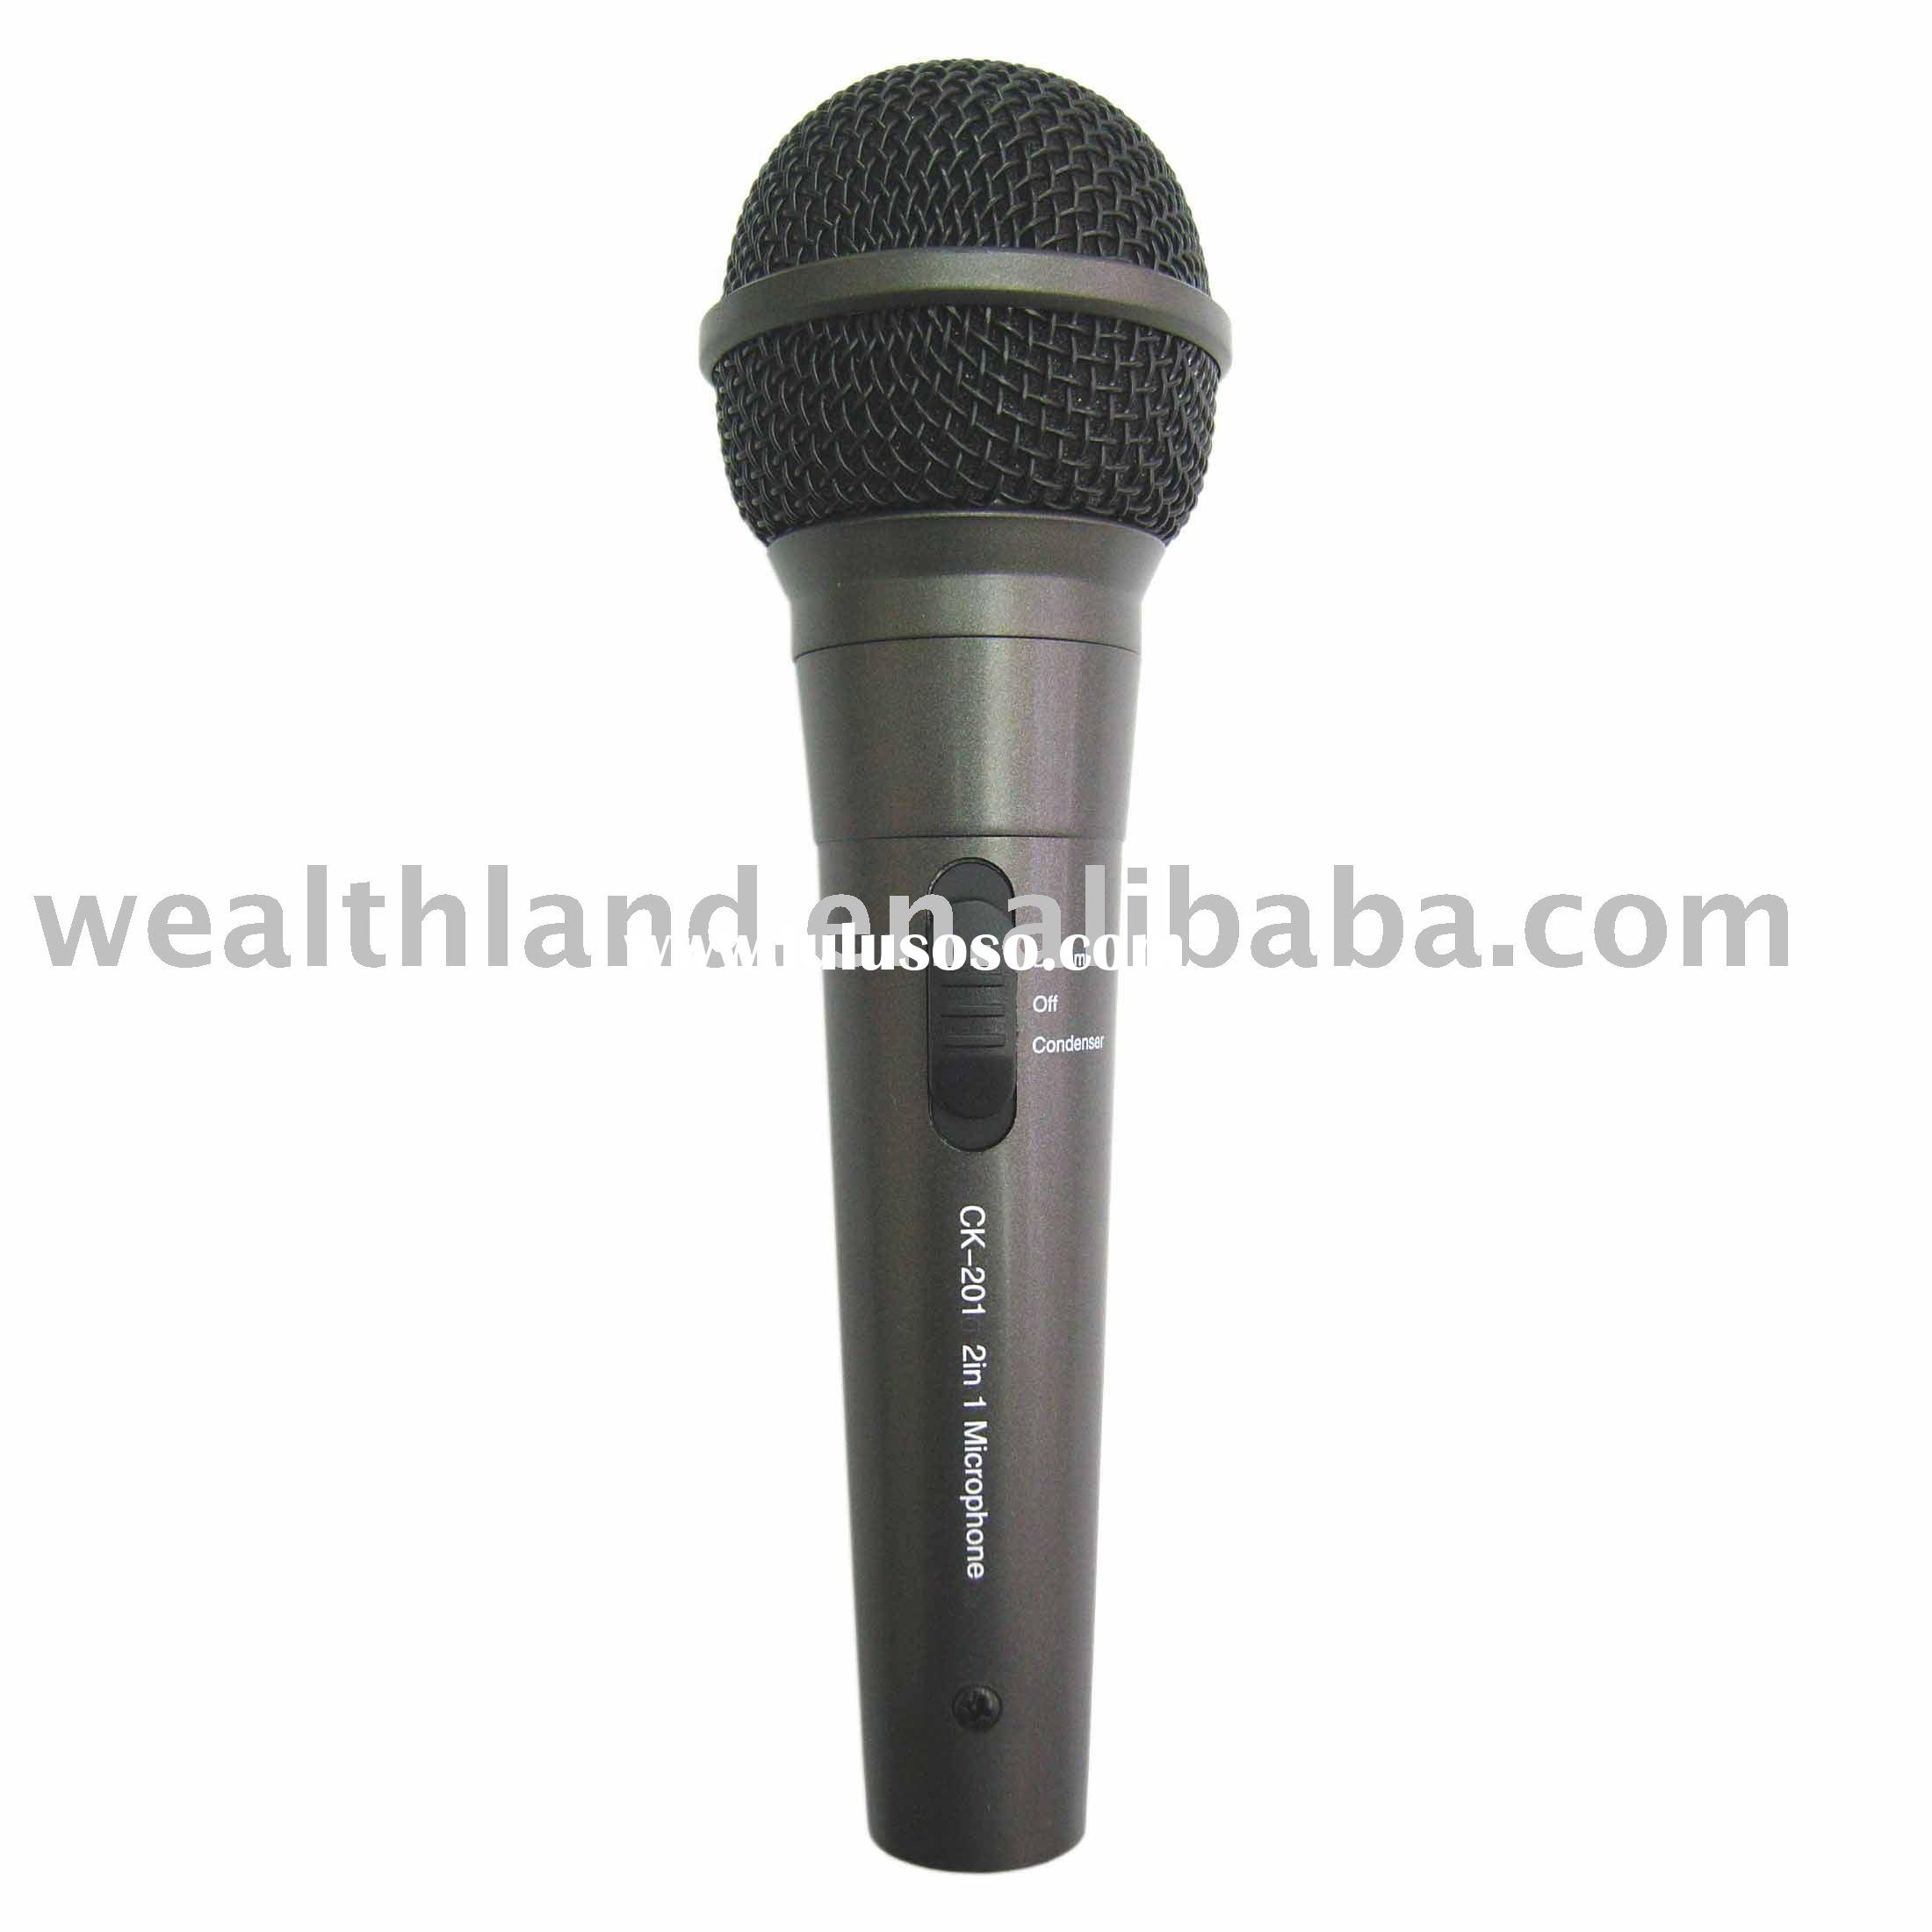 Dynamic Microphone Diagram  Dynamic Microphone Diagram Manufacturers In Lulusoso Com